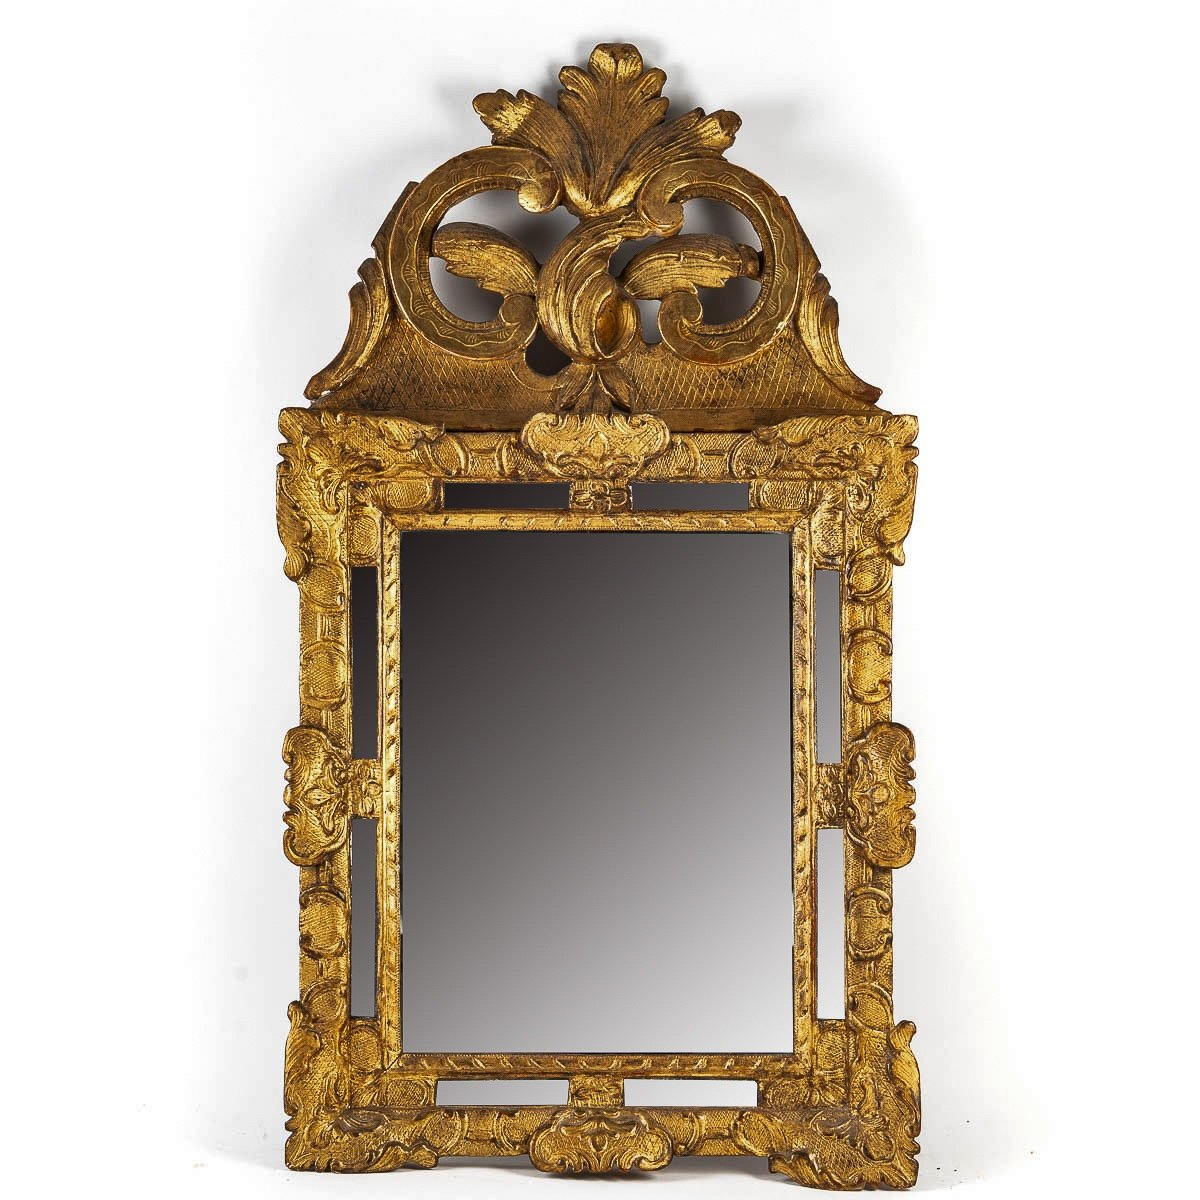 French Regence Period, Small Gilt-wood Top-front Mirror Circa 1715-1723